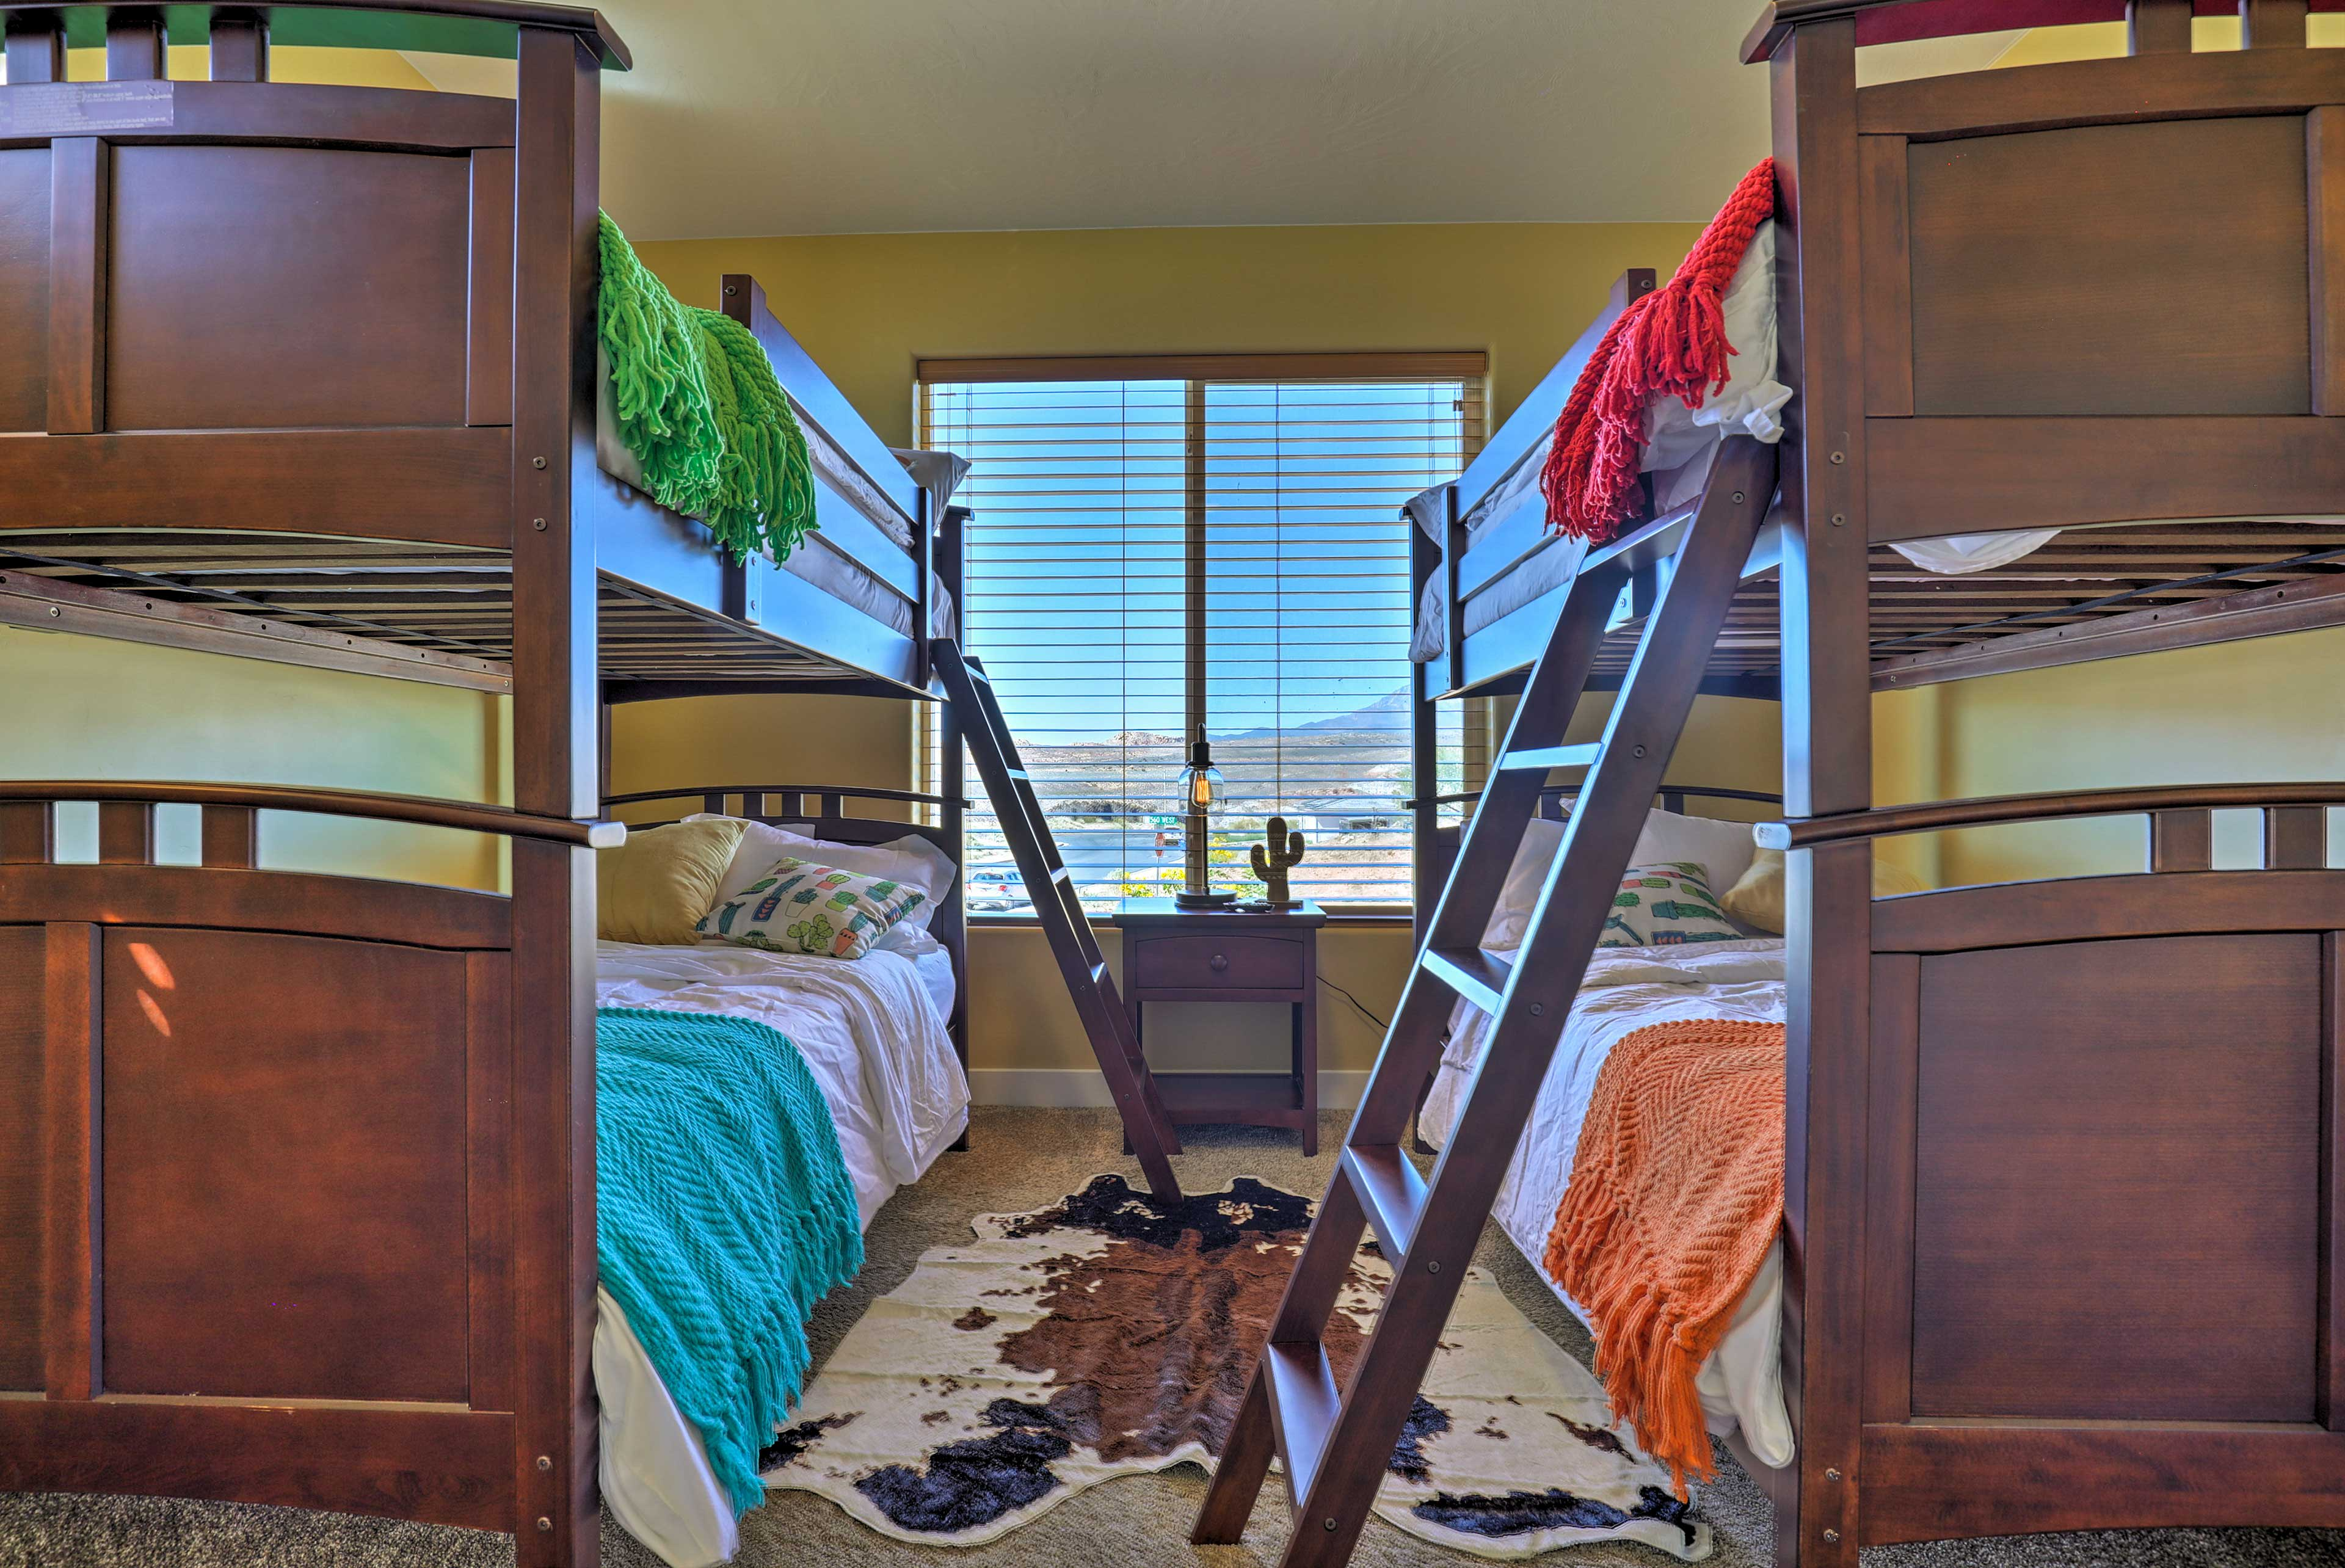 The 2 twin-over-twin bunk beds can sleep 4 people.